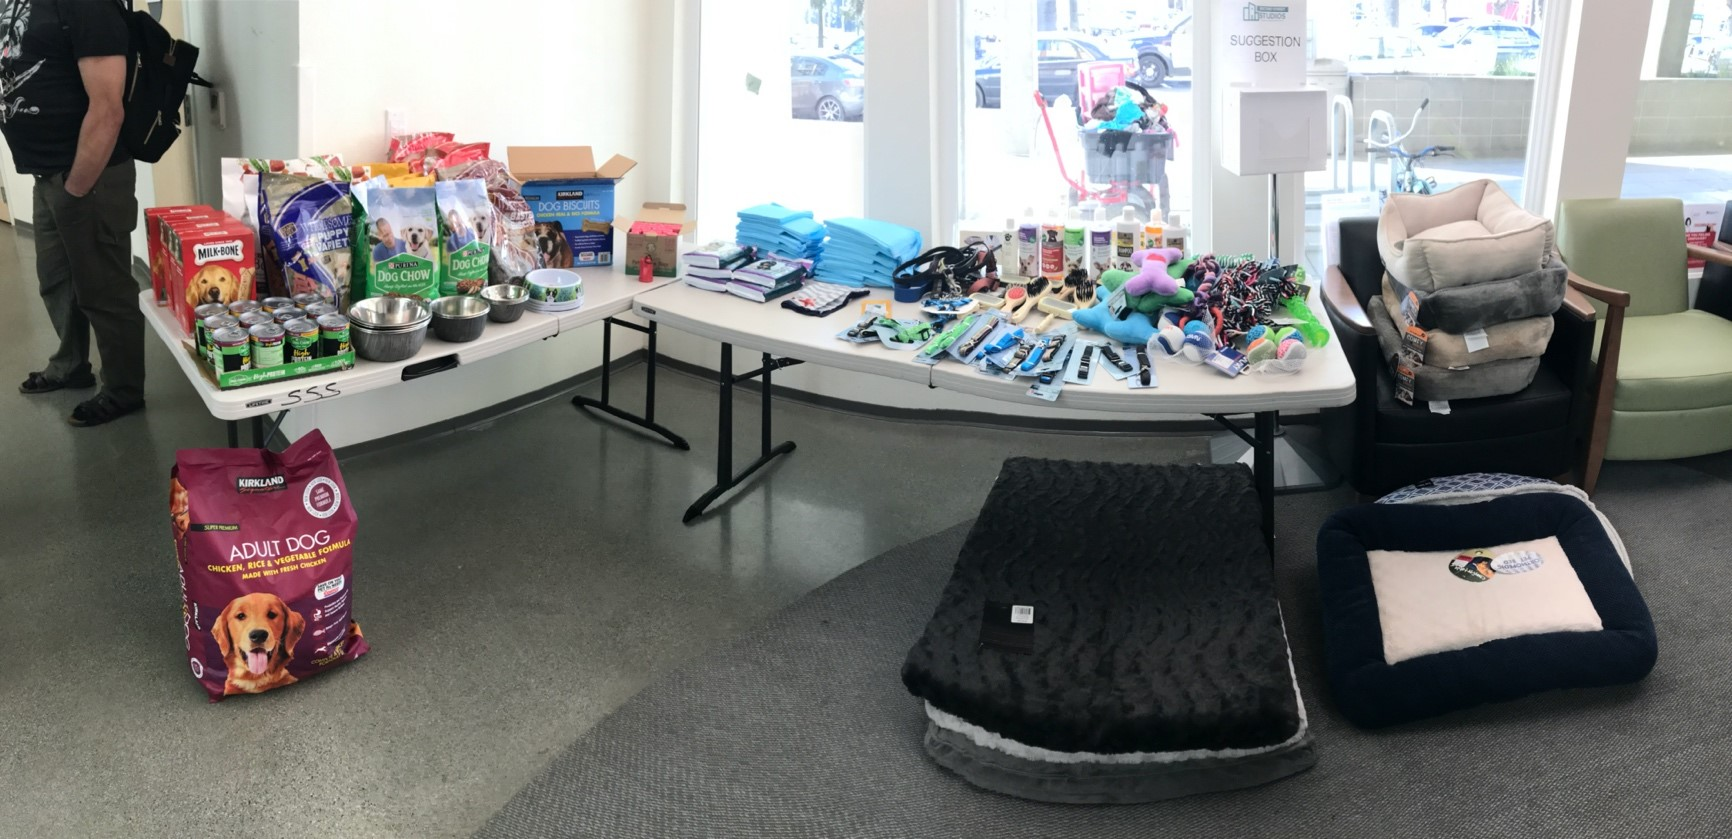 Two tables filled with pet supplies overflowing to the floor and nearby chairs at Second Street Studios in San Jose, California.